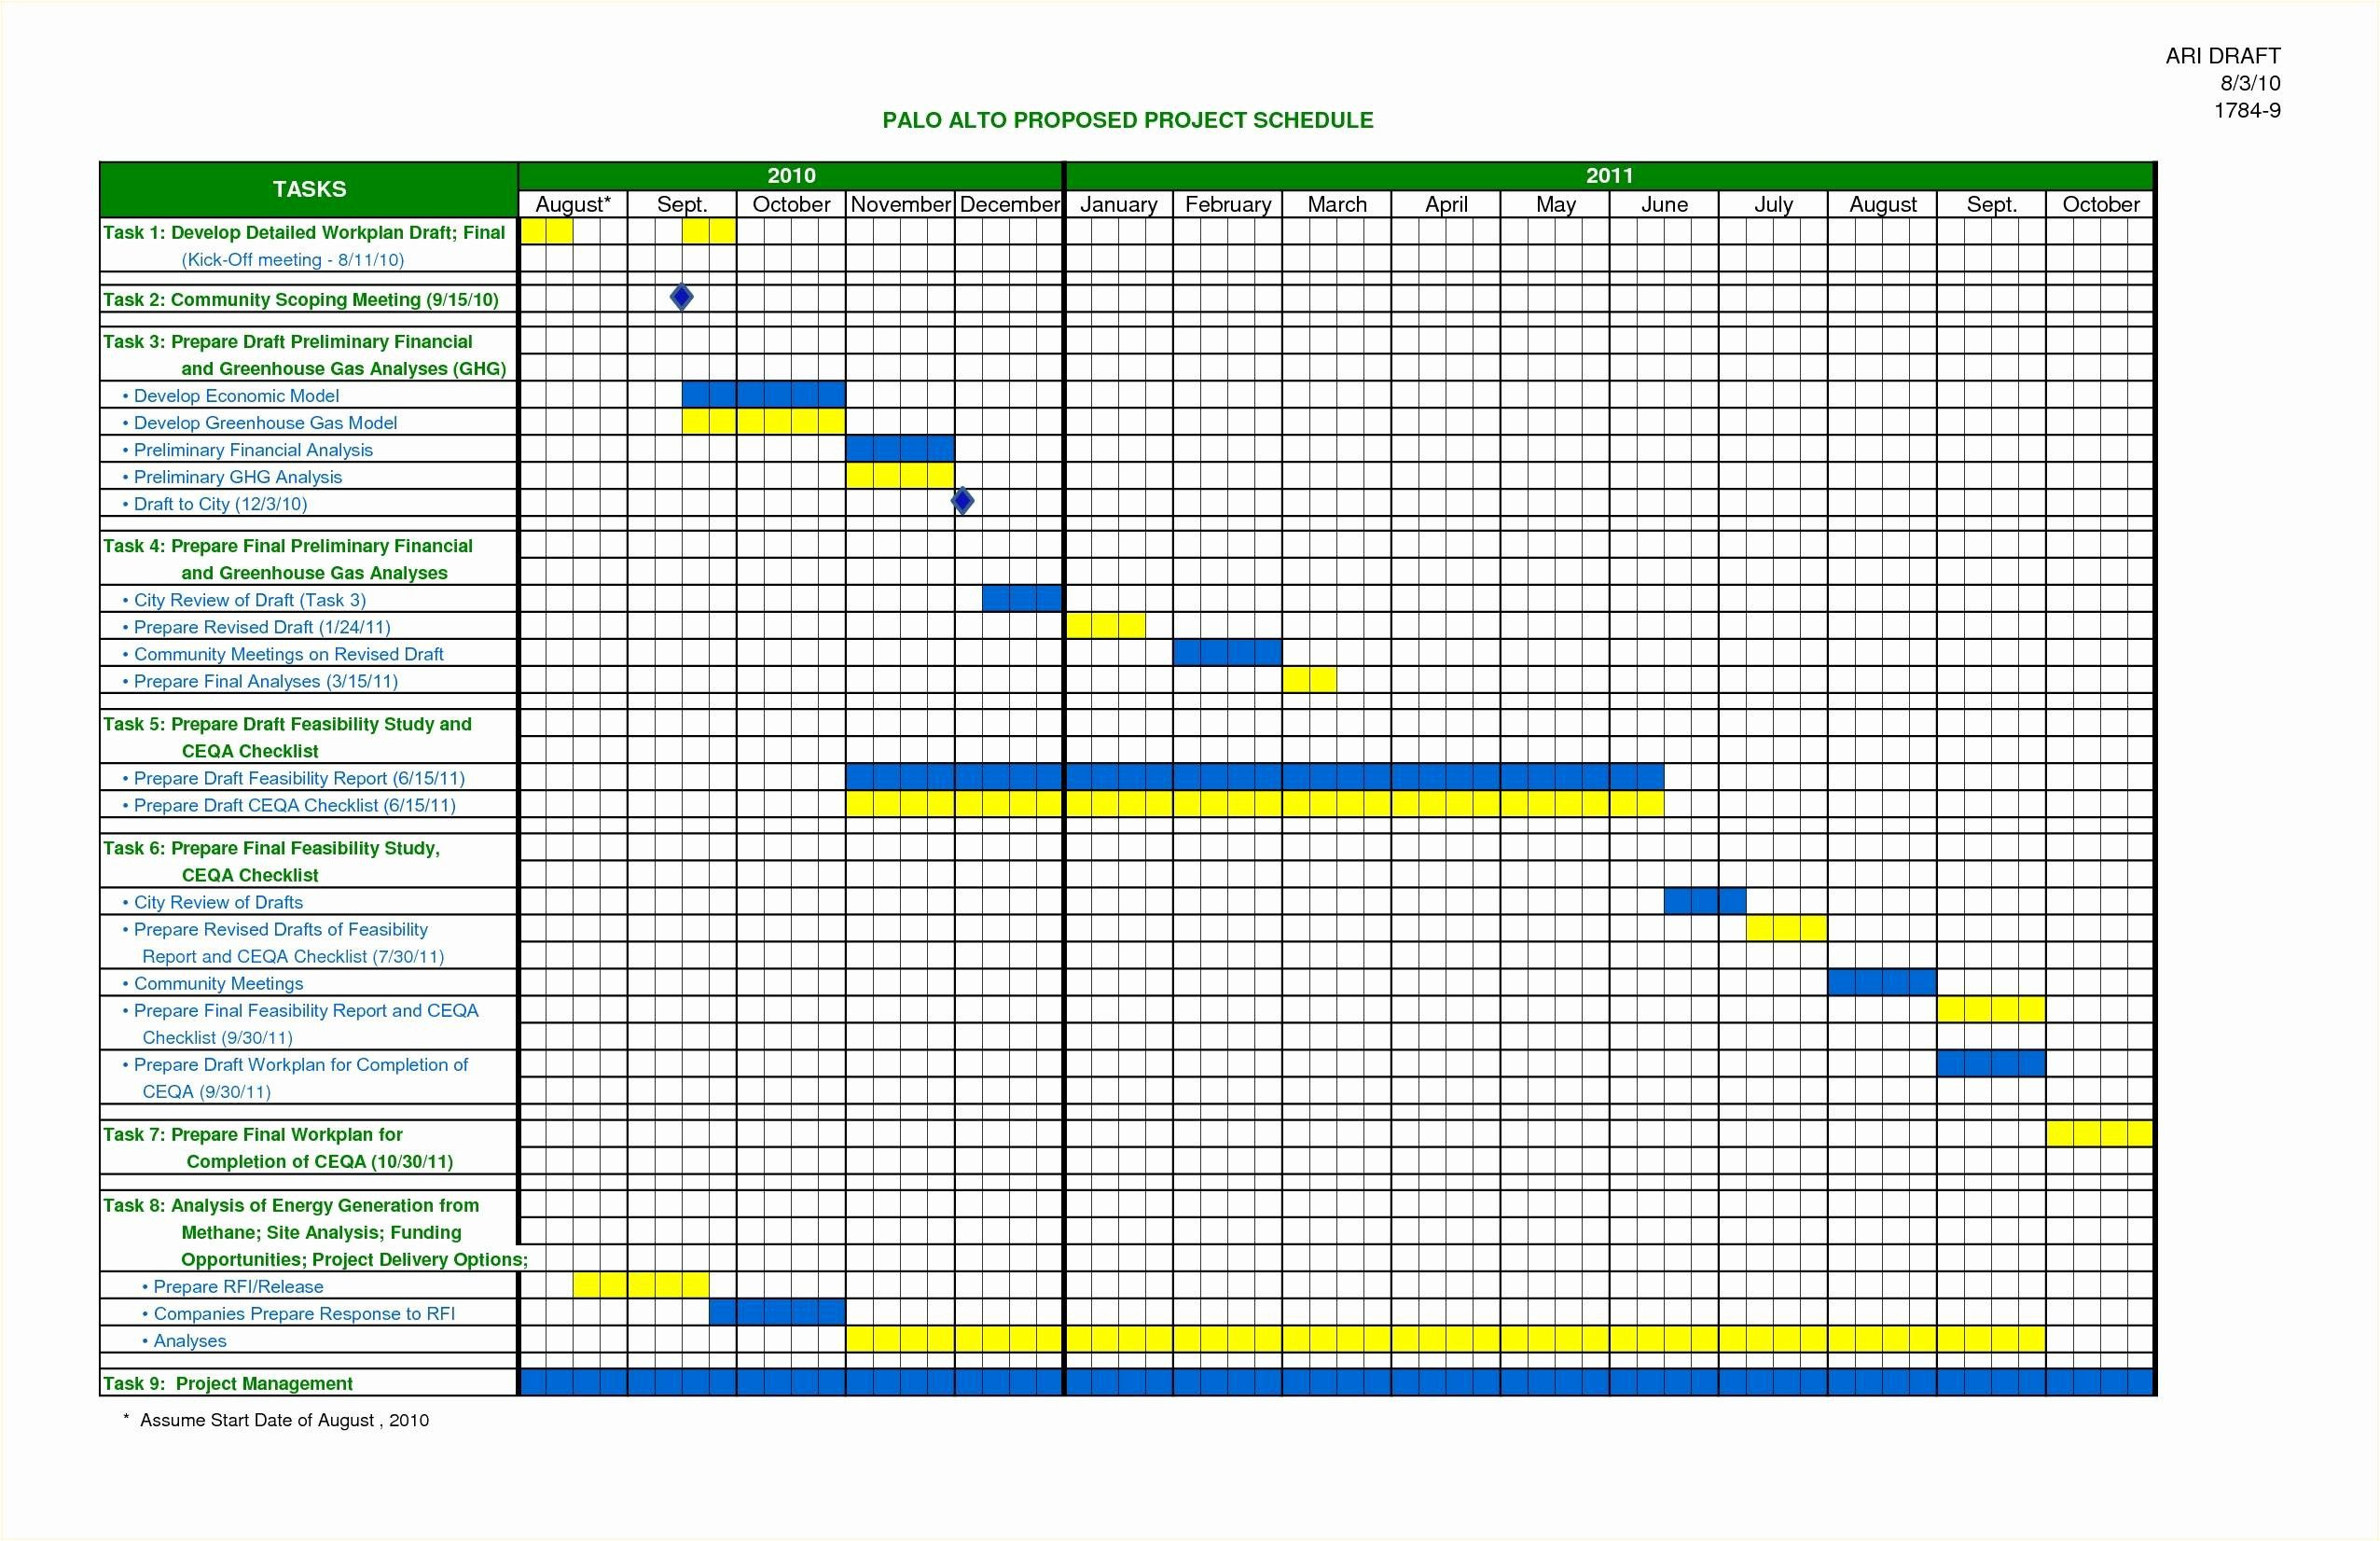 Project Plan Timeline Excel Project Plan Templates Tired Of Managing A Project You Might W Schedule Template Excel Templates Project Timeline Template Free excel project timeline template